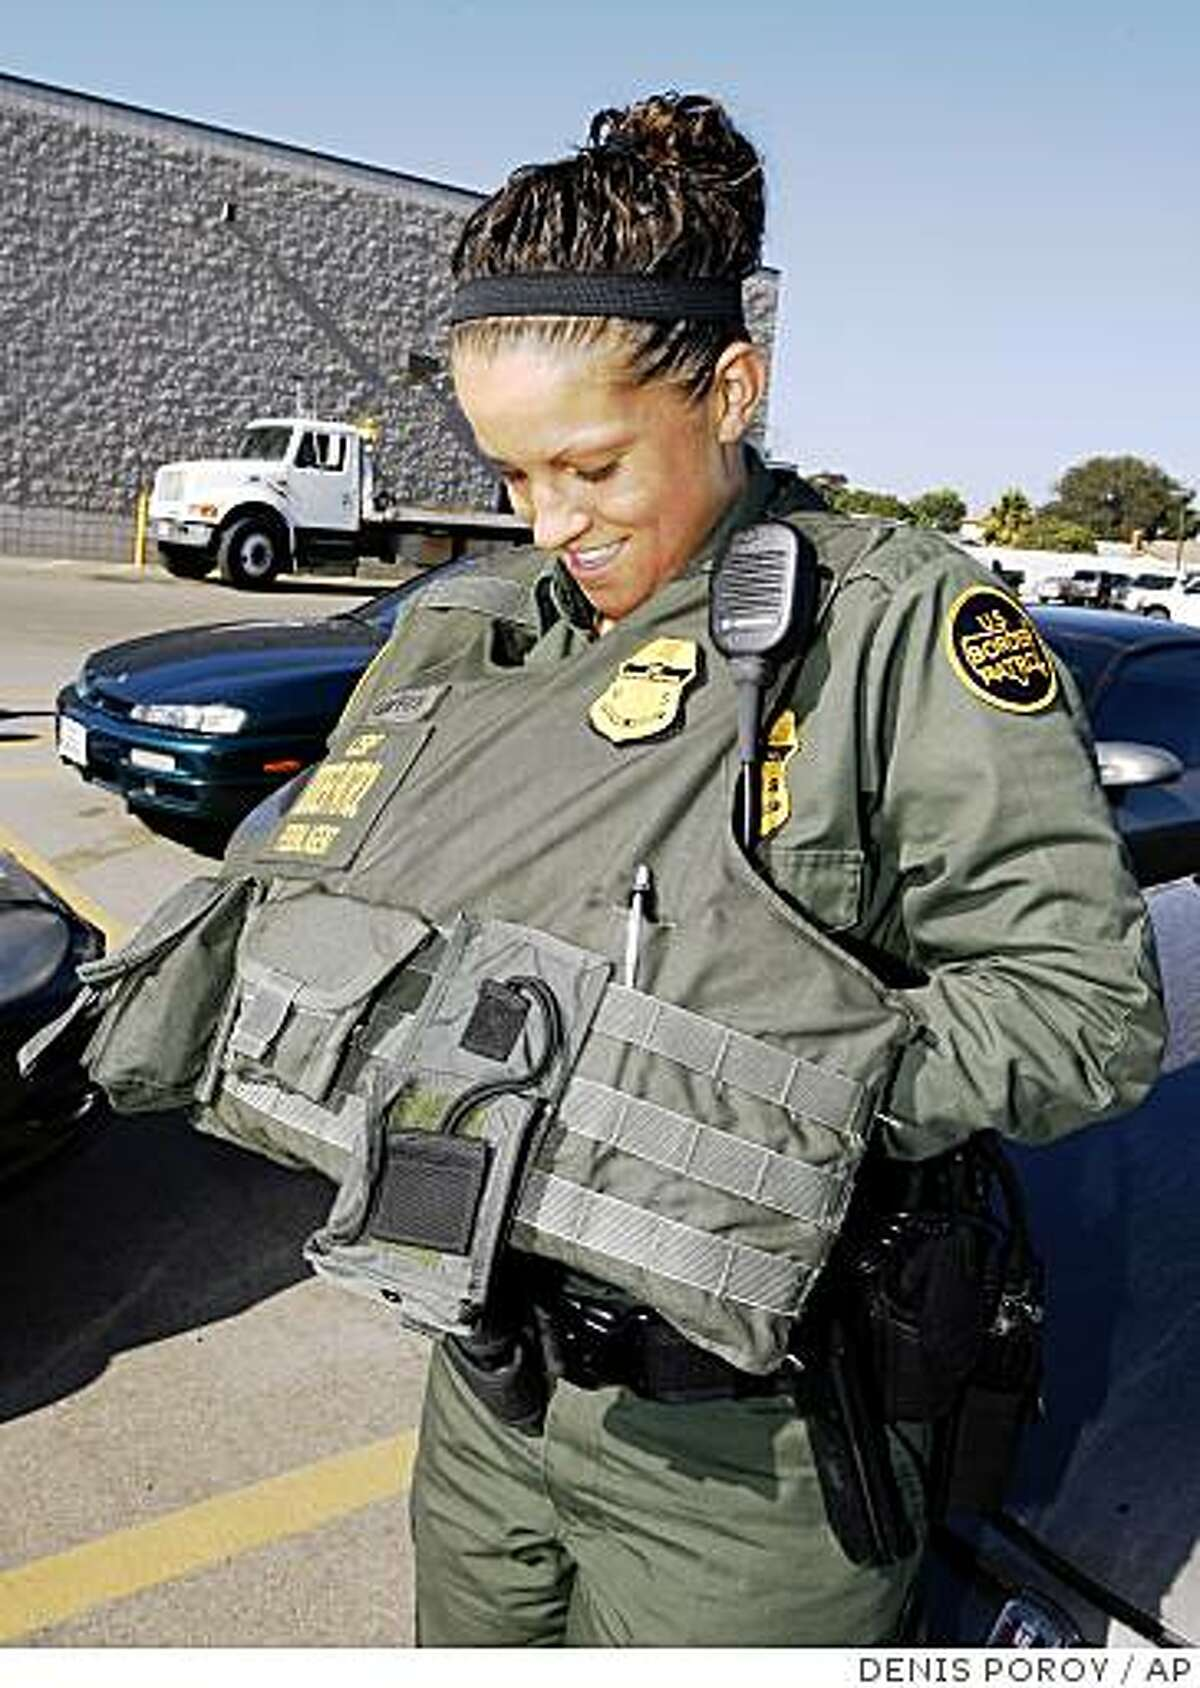 U.S. Border Patrol agent Kate Griffith puts on her bullet-proof vest at the start of her shift at the Imperial Beach Border Patrol Station Wednesday, Aug. 6, 2008 in Imperial Beach, Calif. Griffith has been a border patrol agent for little over 20 months.The sobering reality of life on the border has created an environment in which about 30 percent of agents leave the agency in less than 18 months. (AP Photo/Denis Poroy)